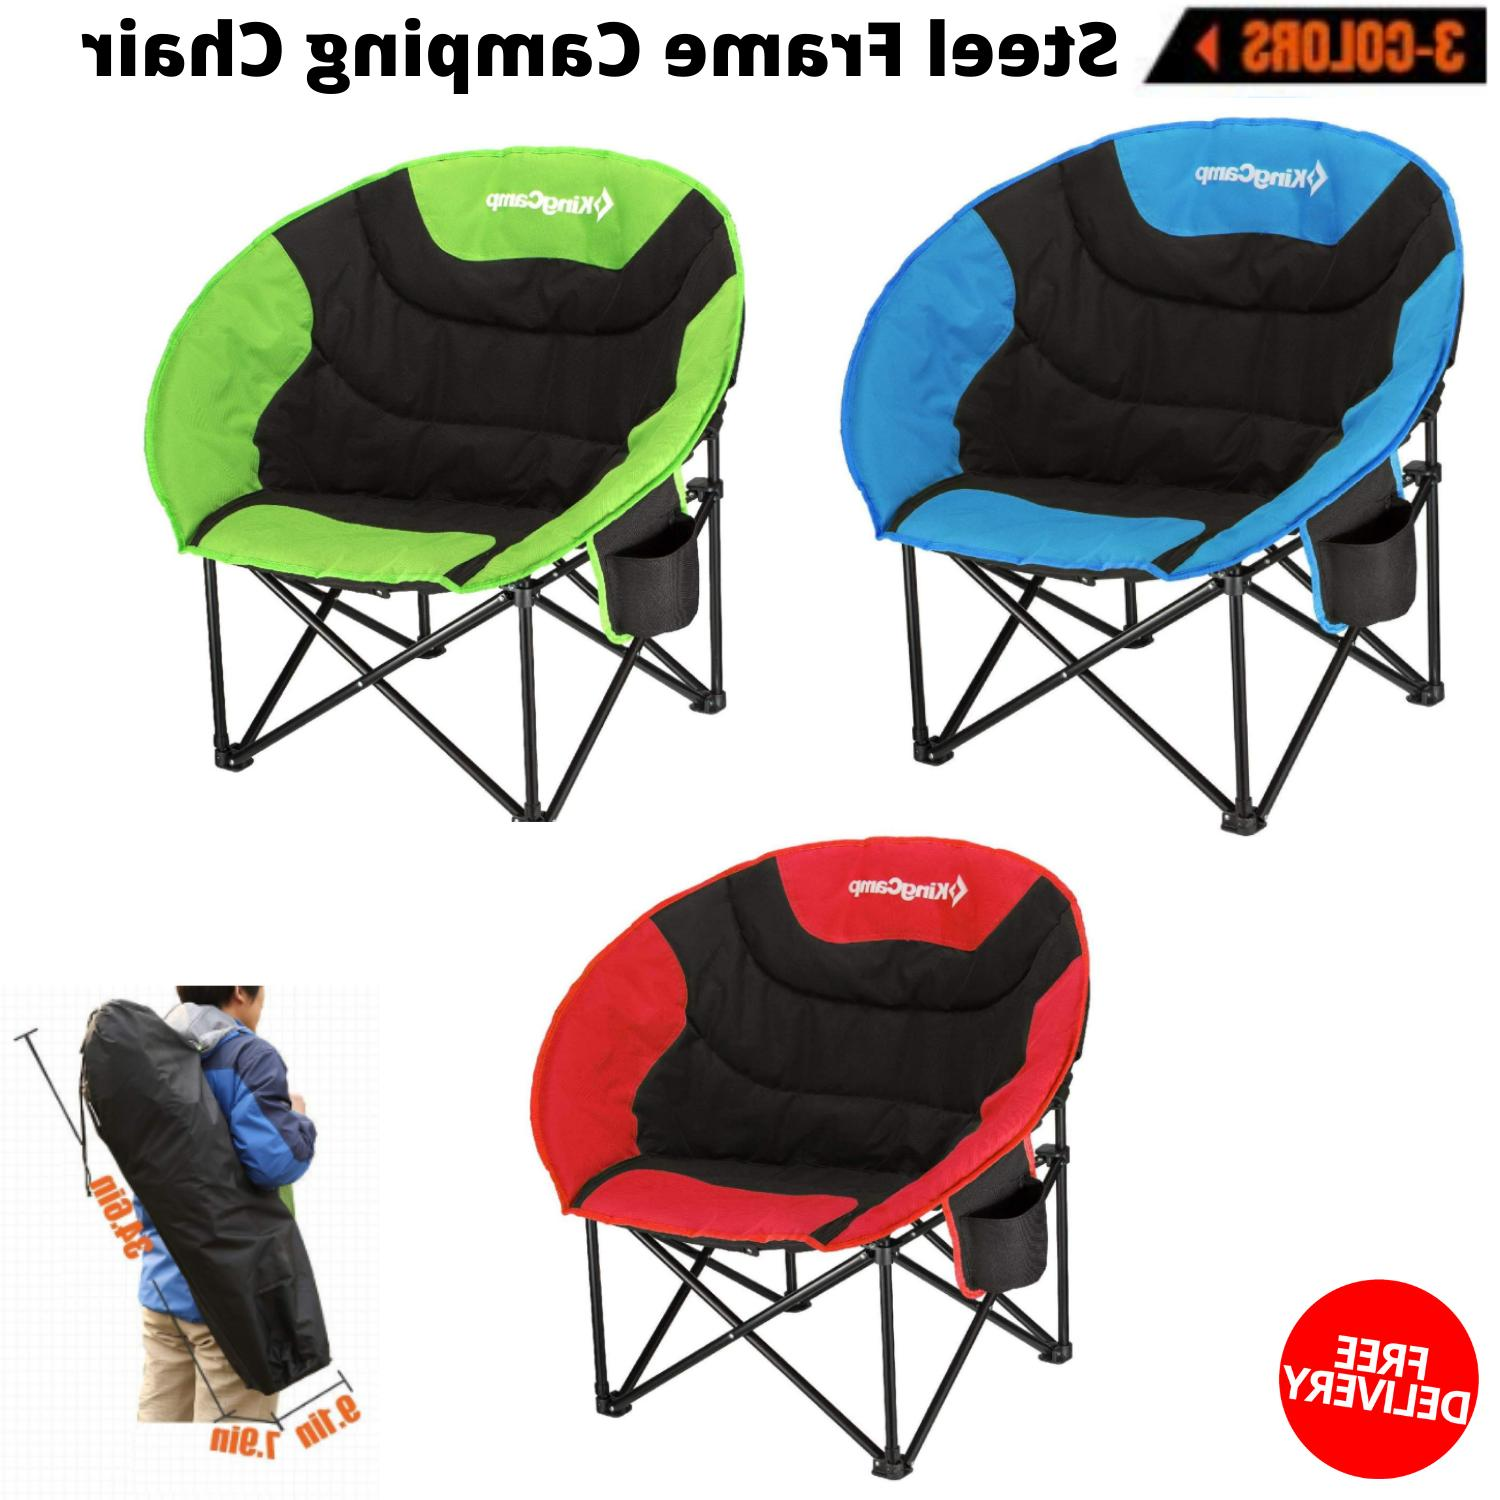 new portable steel frame camping chair